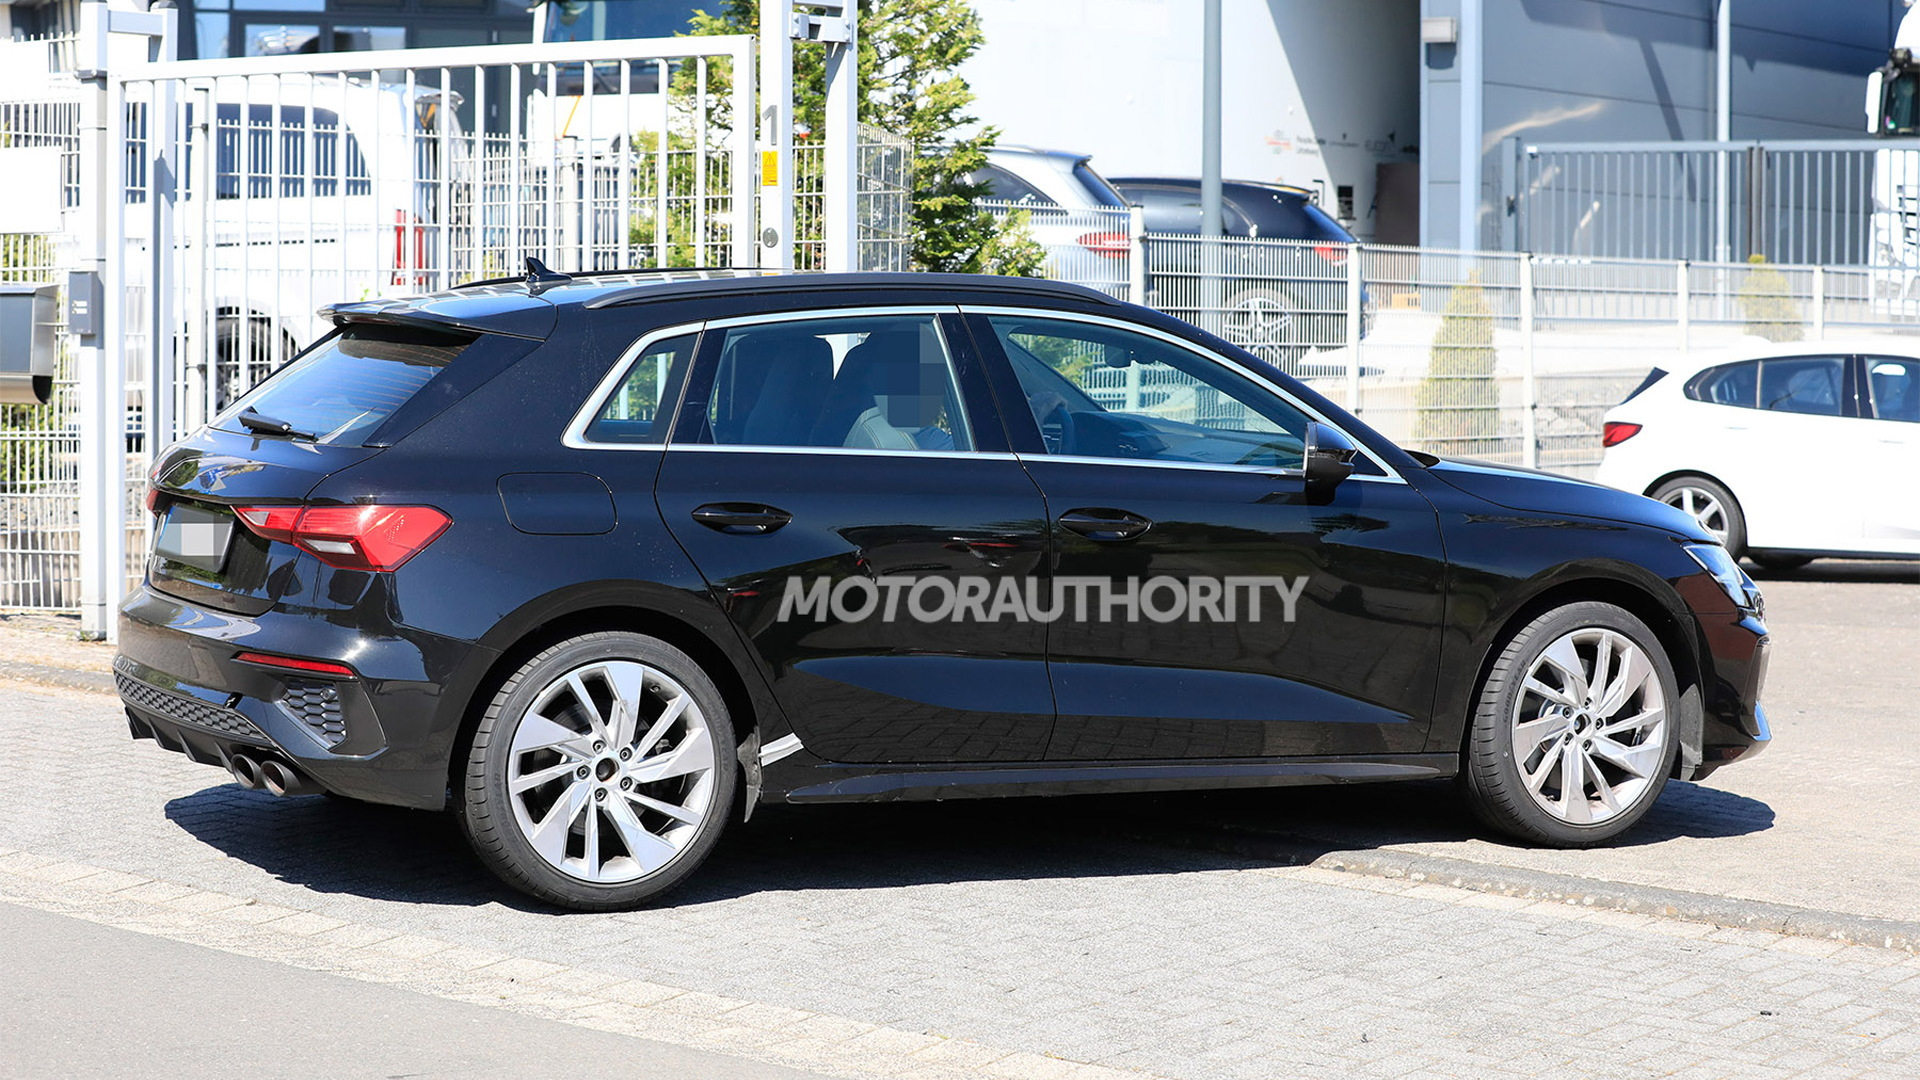 2022 Audi S3 Sportback spy shots - Photo credit: S. Baldauf/SB-Medien